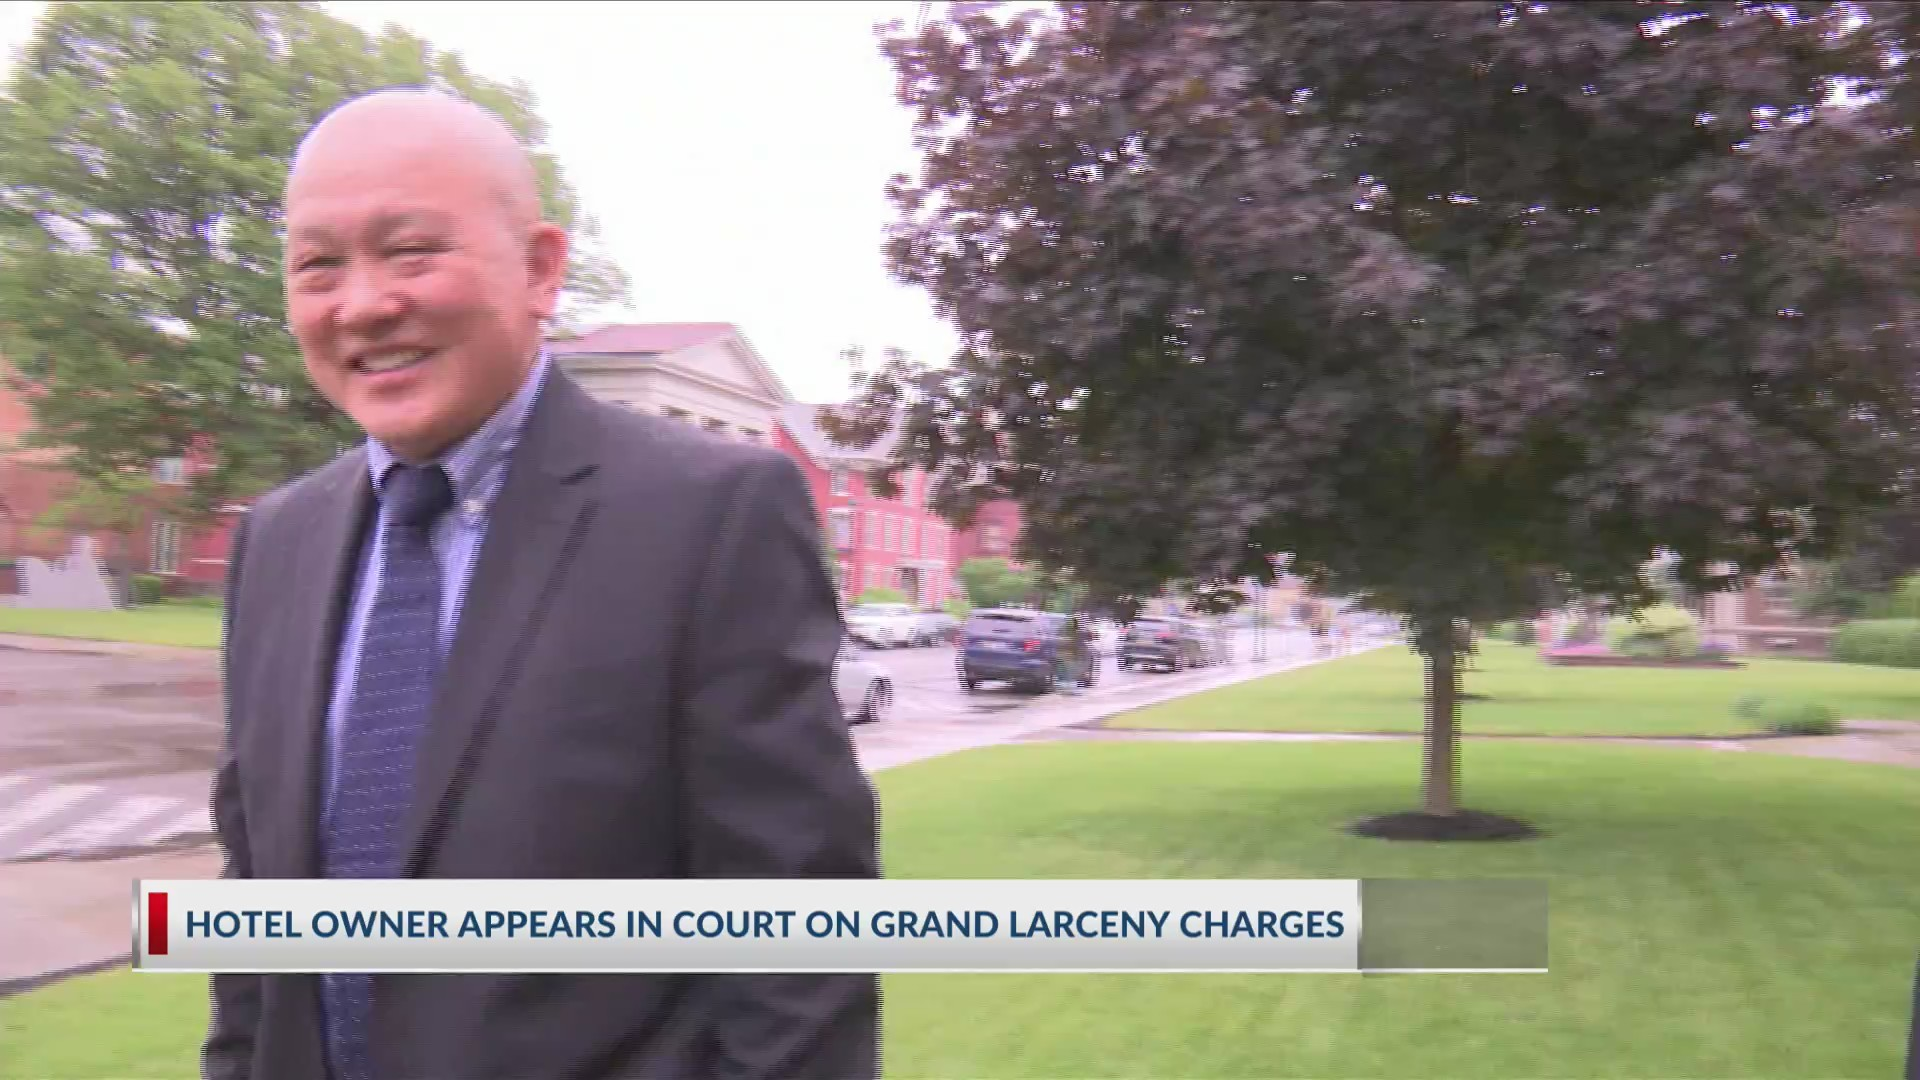 Hotel owner appears in court on grand larceny charges